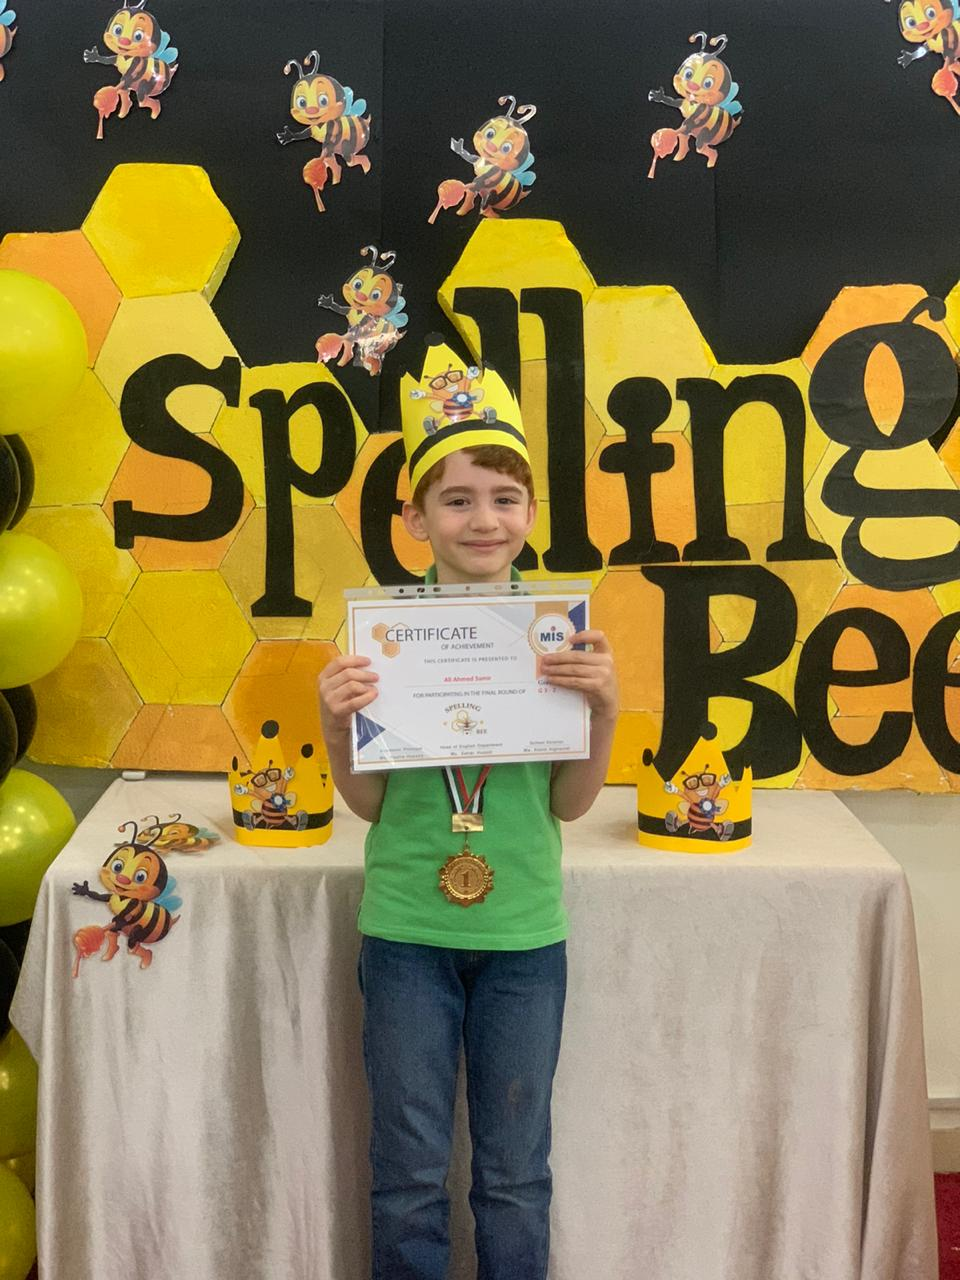 SPELLING BEE CONTEST 2019-2020